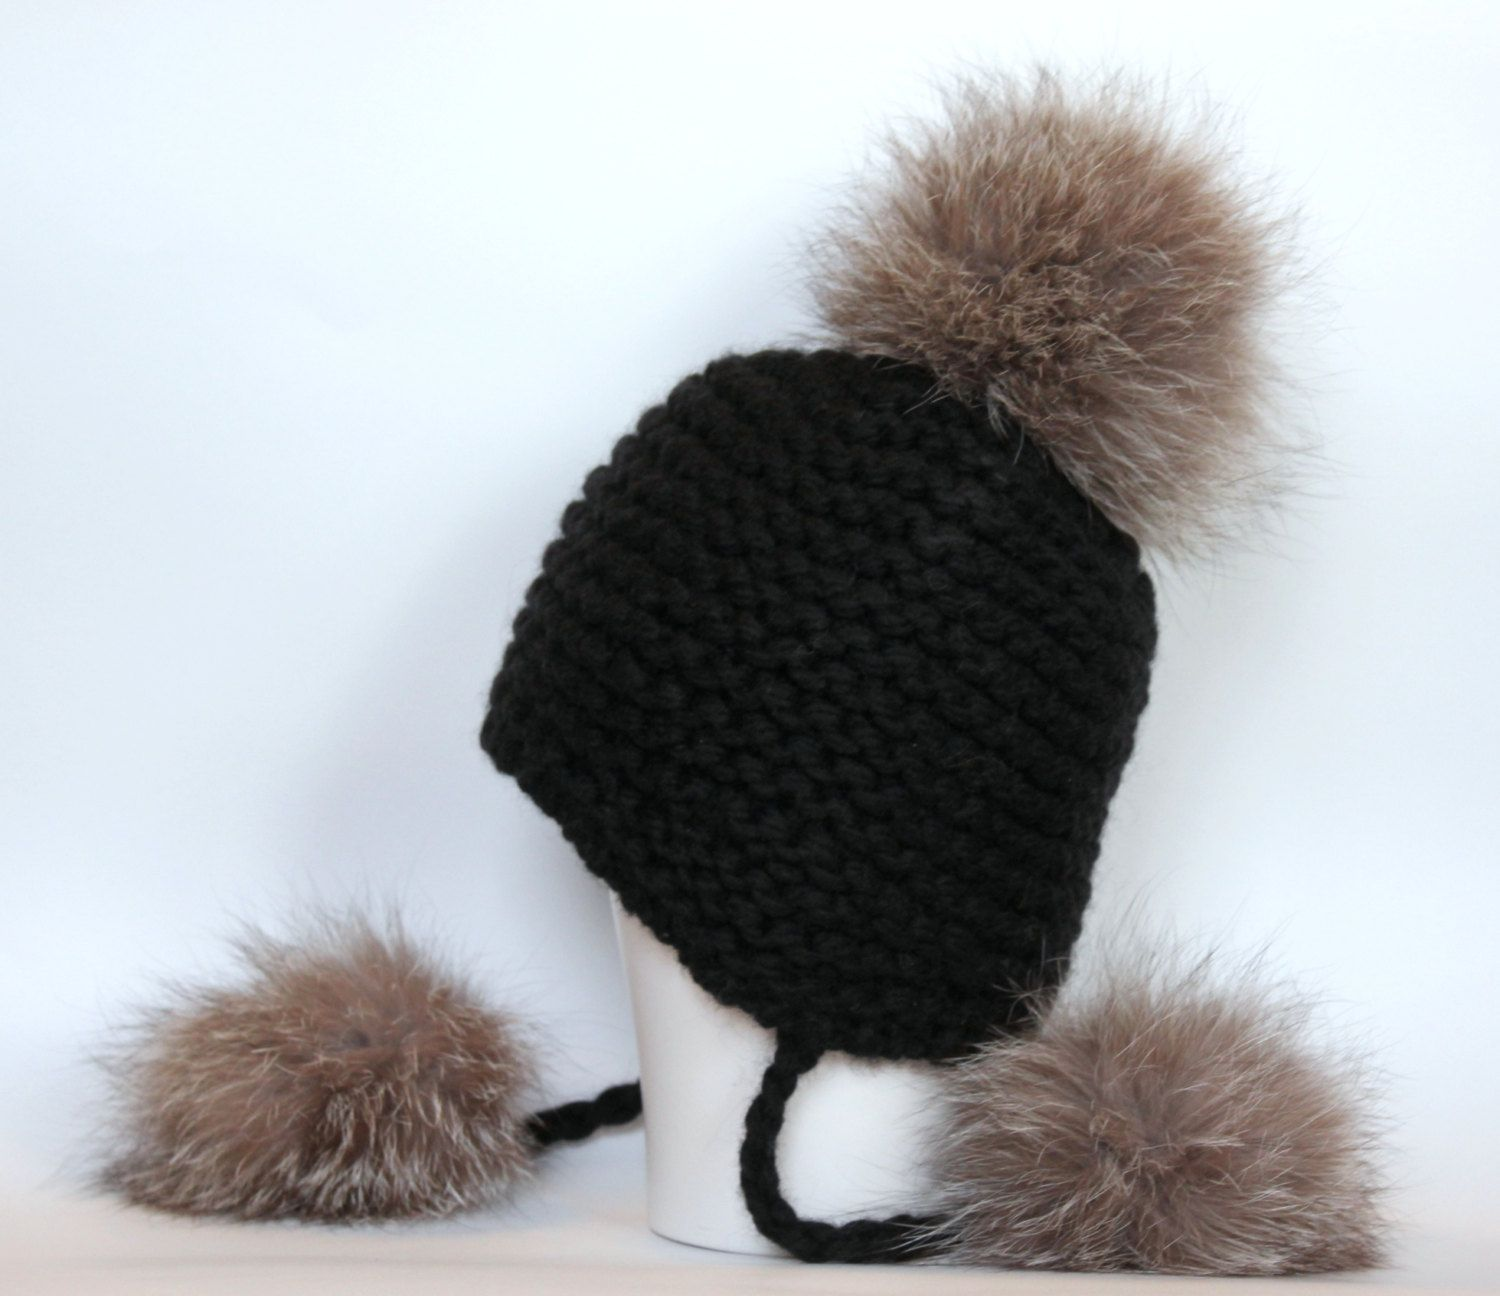 83a125ddf01 Chunky knit hat with fur pom poms   Peruvian hat   Earflap hat   Womens  kntted